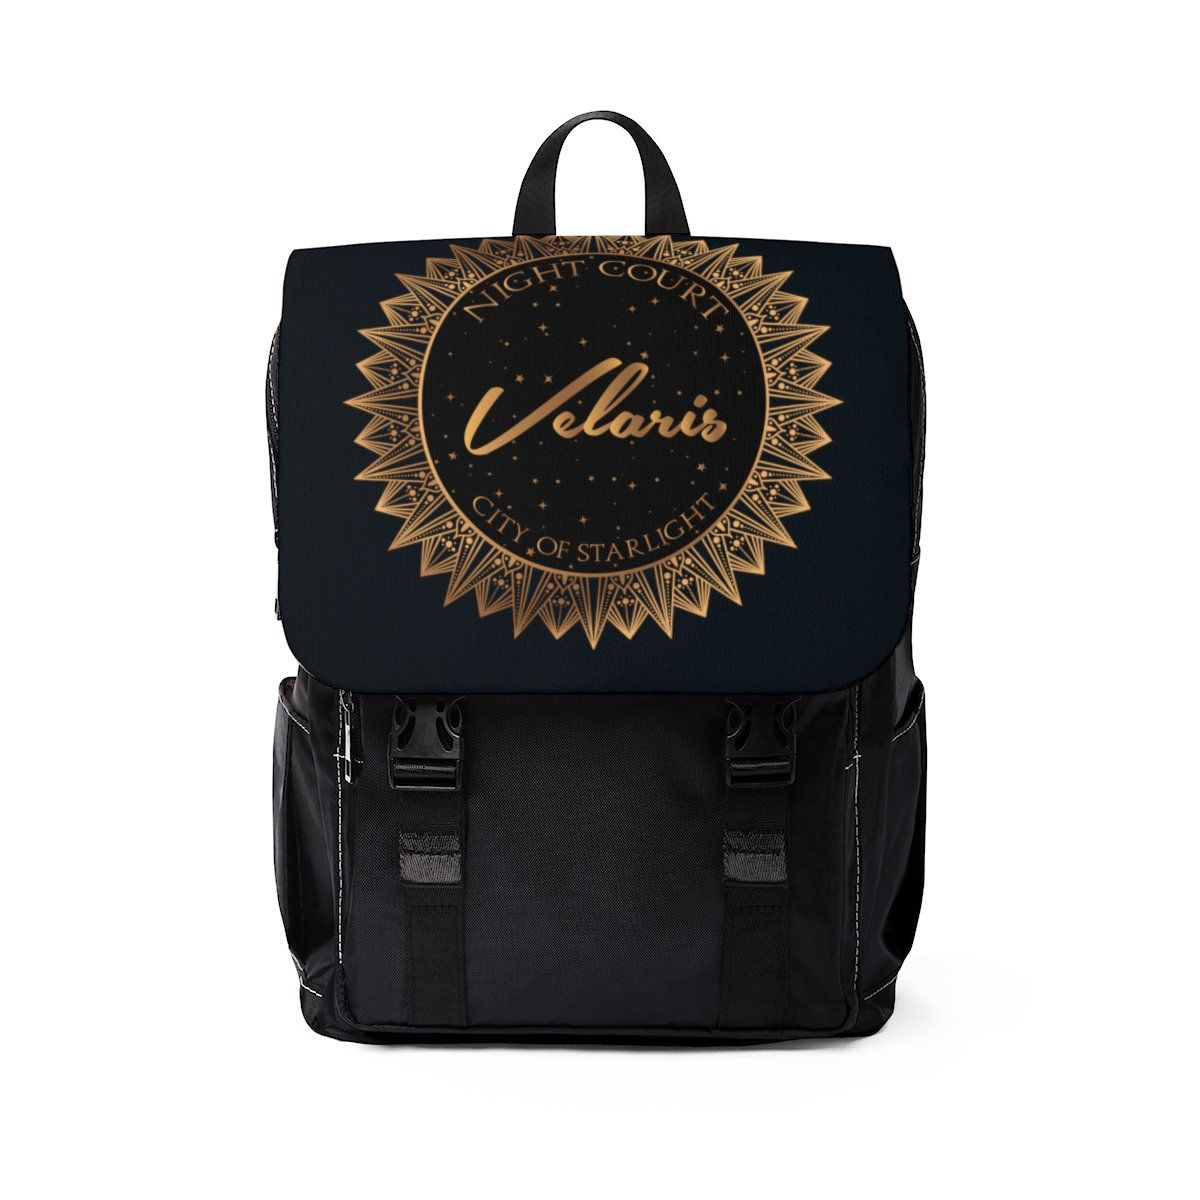 Velaris ACOTAR Backpack, A Court Of Thorns And Roses